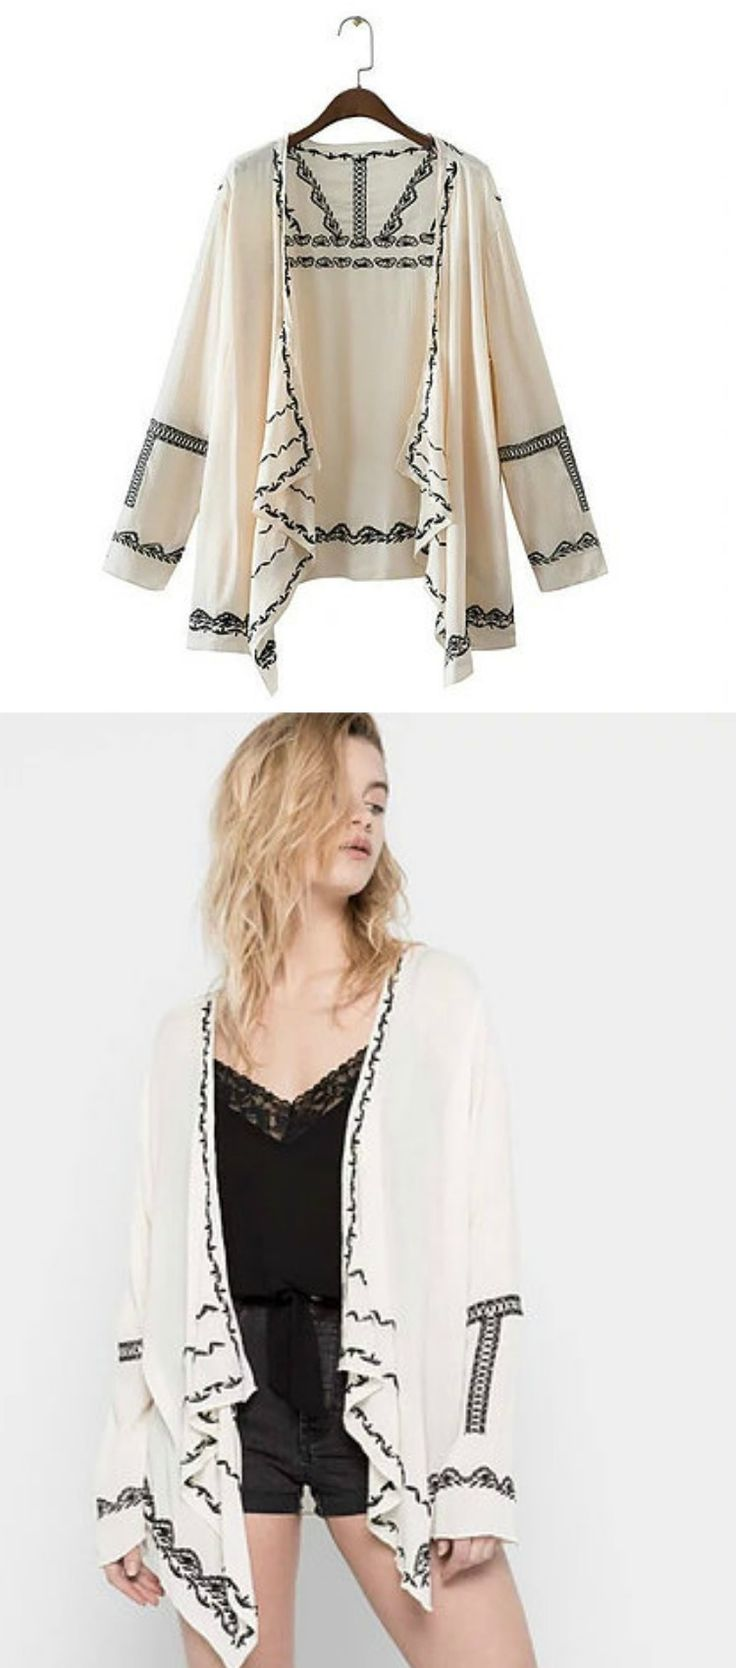 $36 - Gypsy Kimono Cardigan is Available at Pasaboho ( Free Shipping Worldwide ) *A Boho Hippie Style Cardigan Top with embroidery patterns